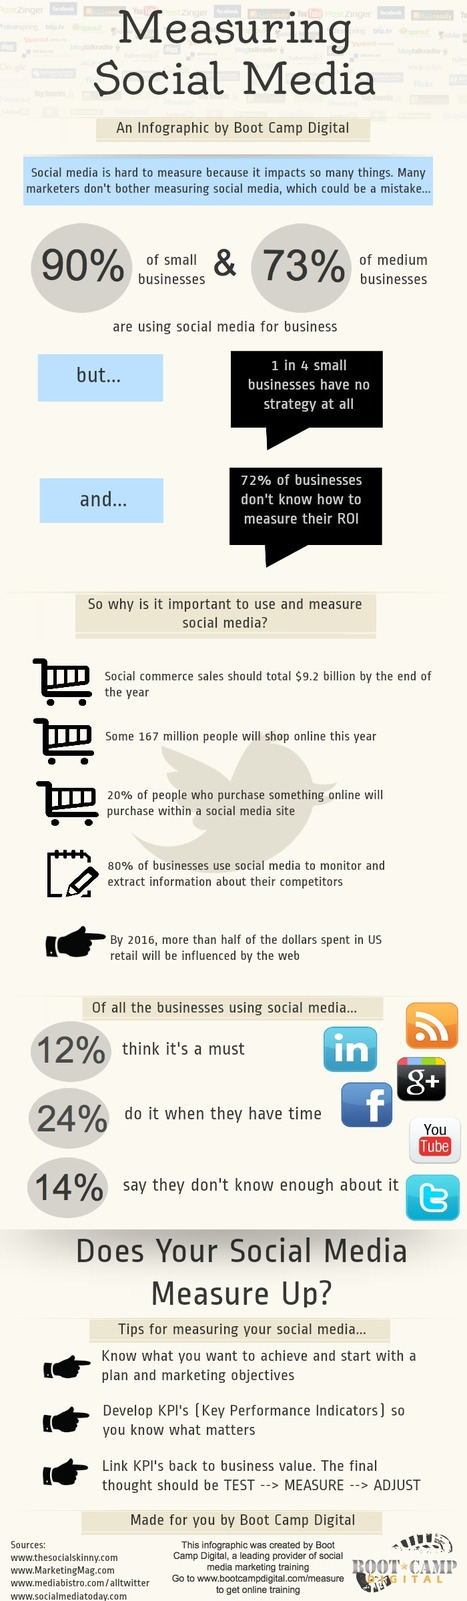 How Do You Measure Social Media ROI? #INFOGRAPHIC | Mastering Facebook, Google+, Twitter | Scoop.it